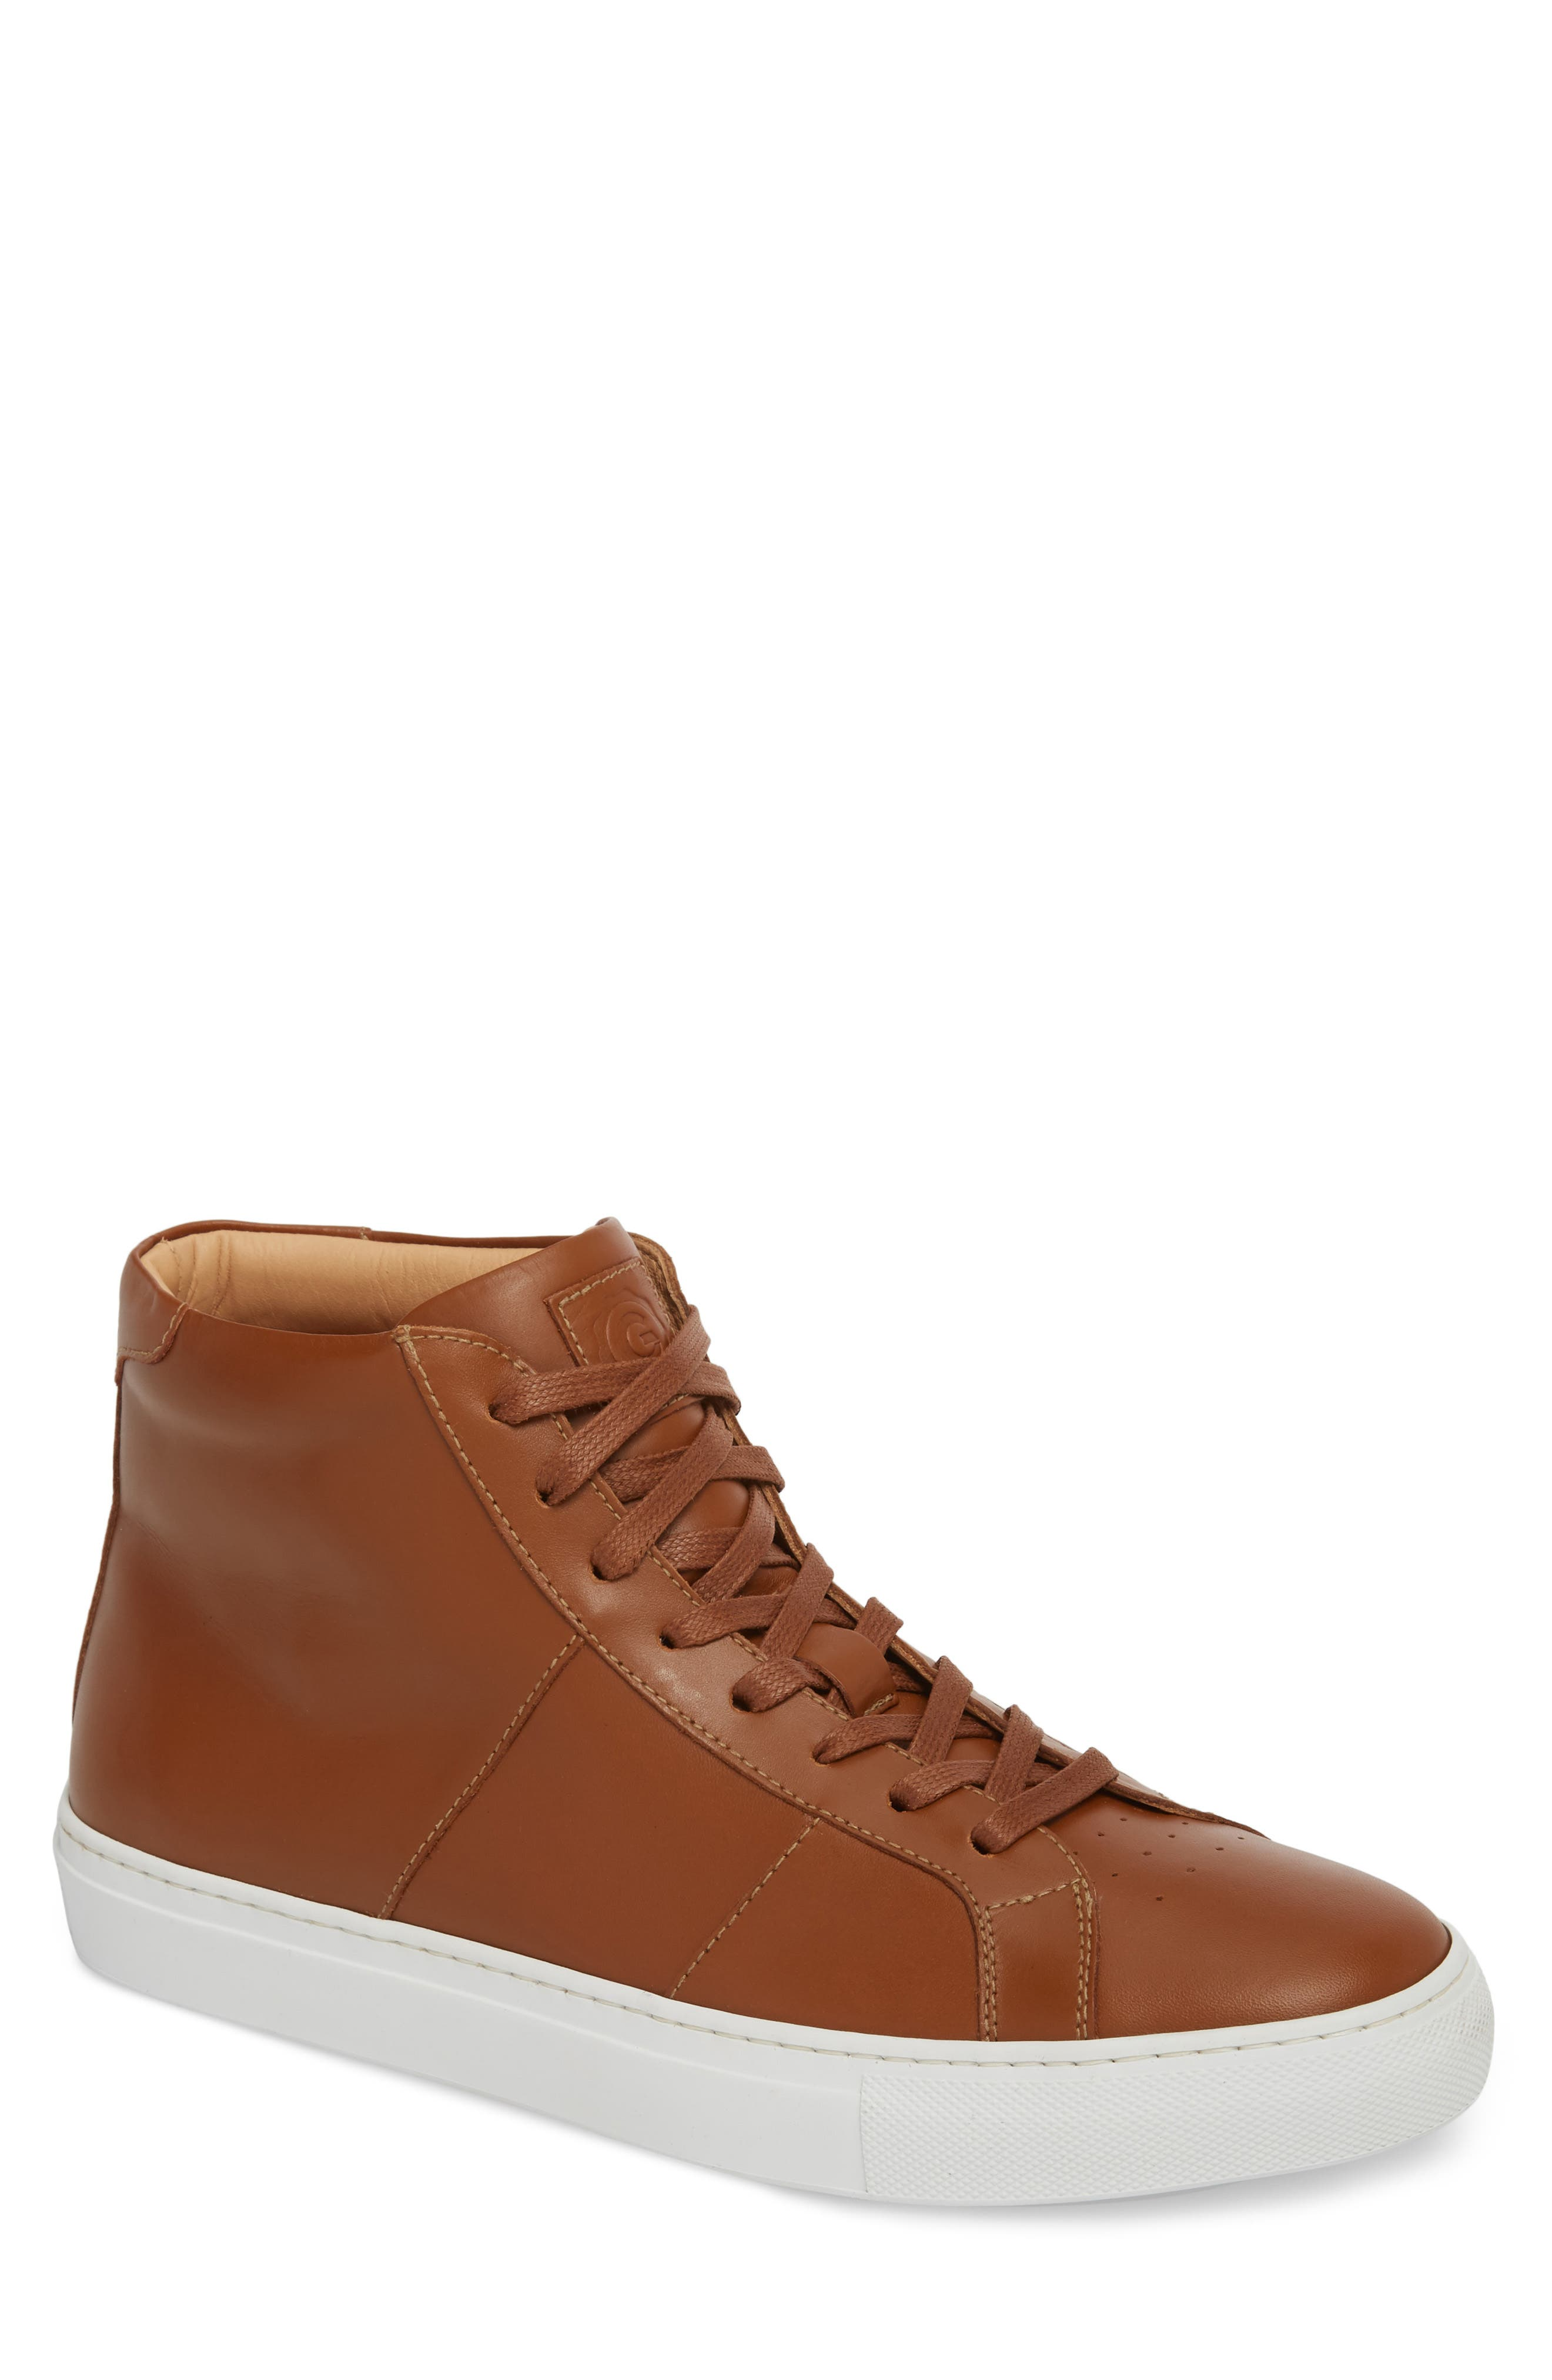 Royale High Cuoio Men 199 outlet 2014 sale excellent outlet extremely buy cheap fake sale extremely jWwMbkM